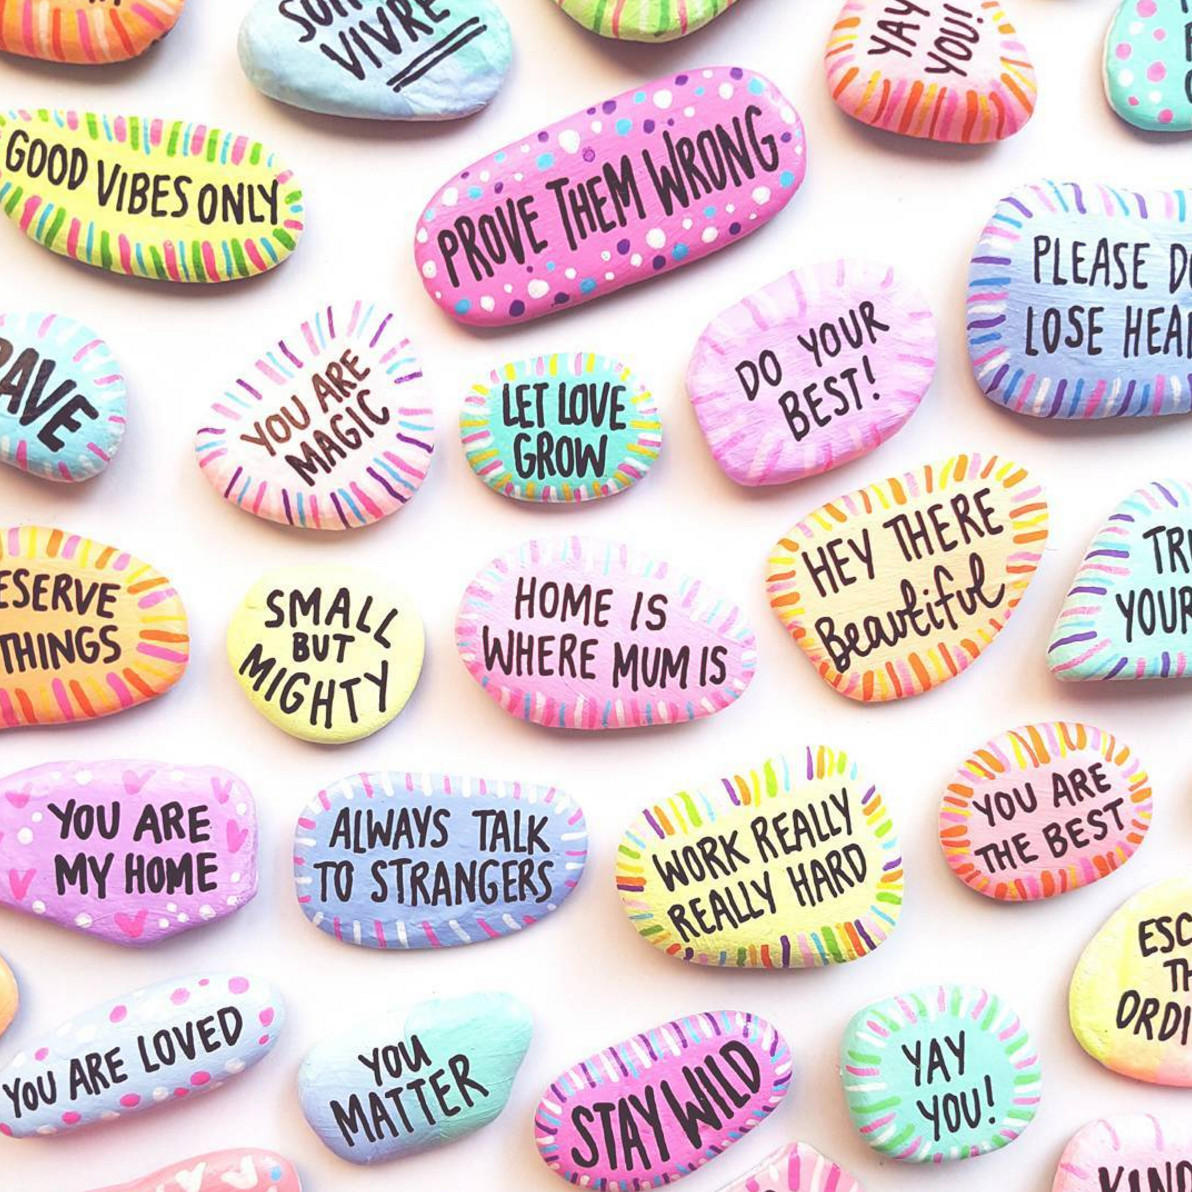 Kindness Rocks Quotes  Let s Chat Papered Thoughts Rock Art